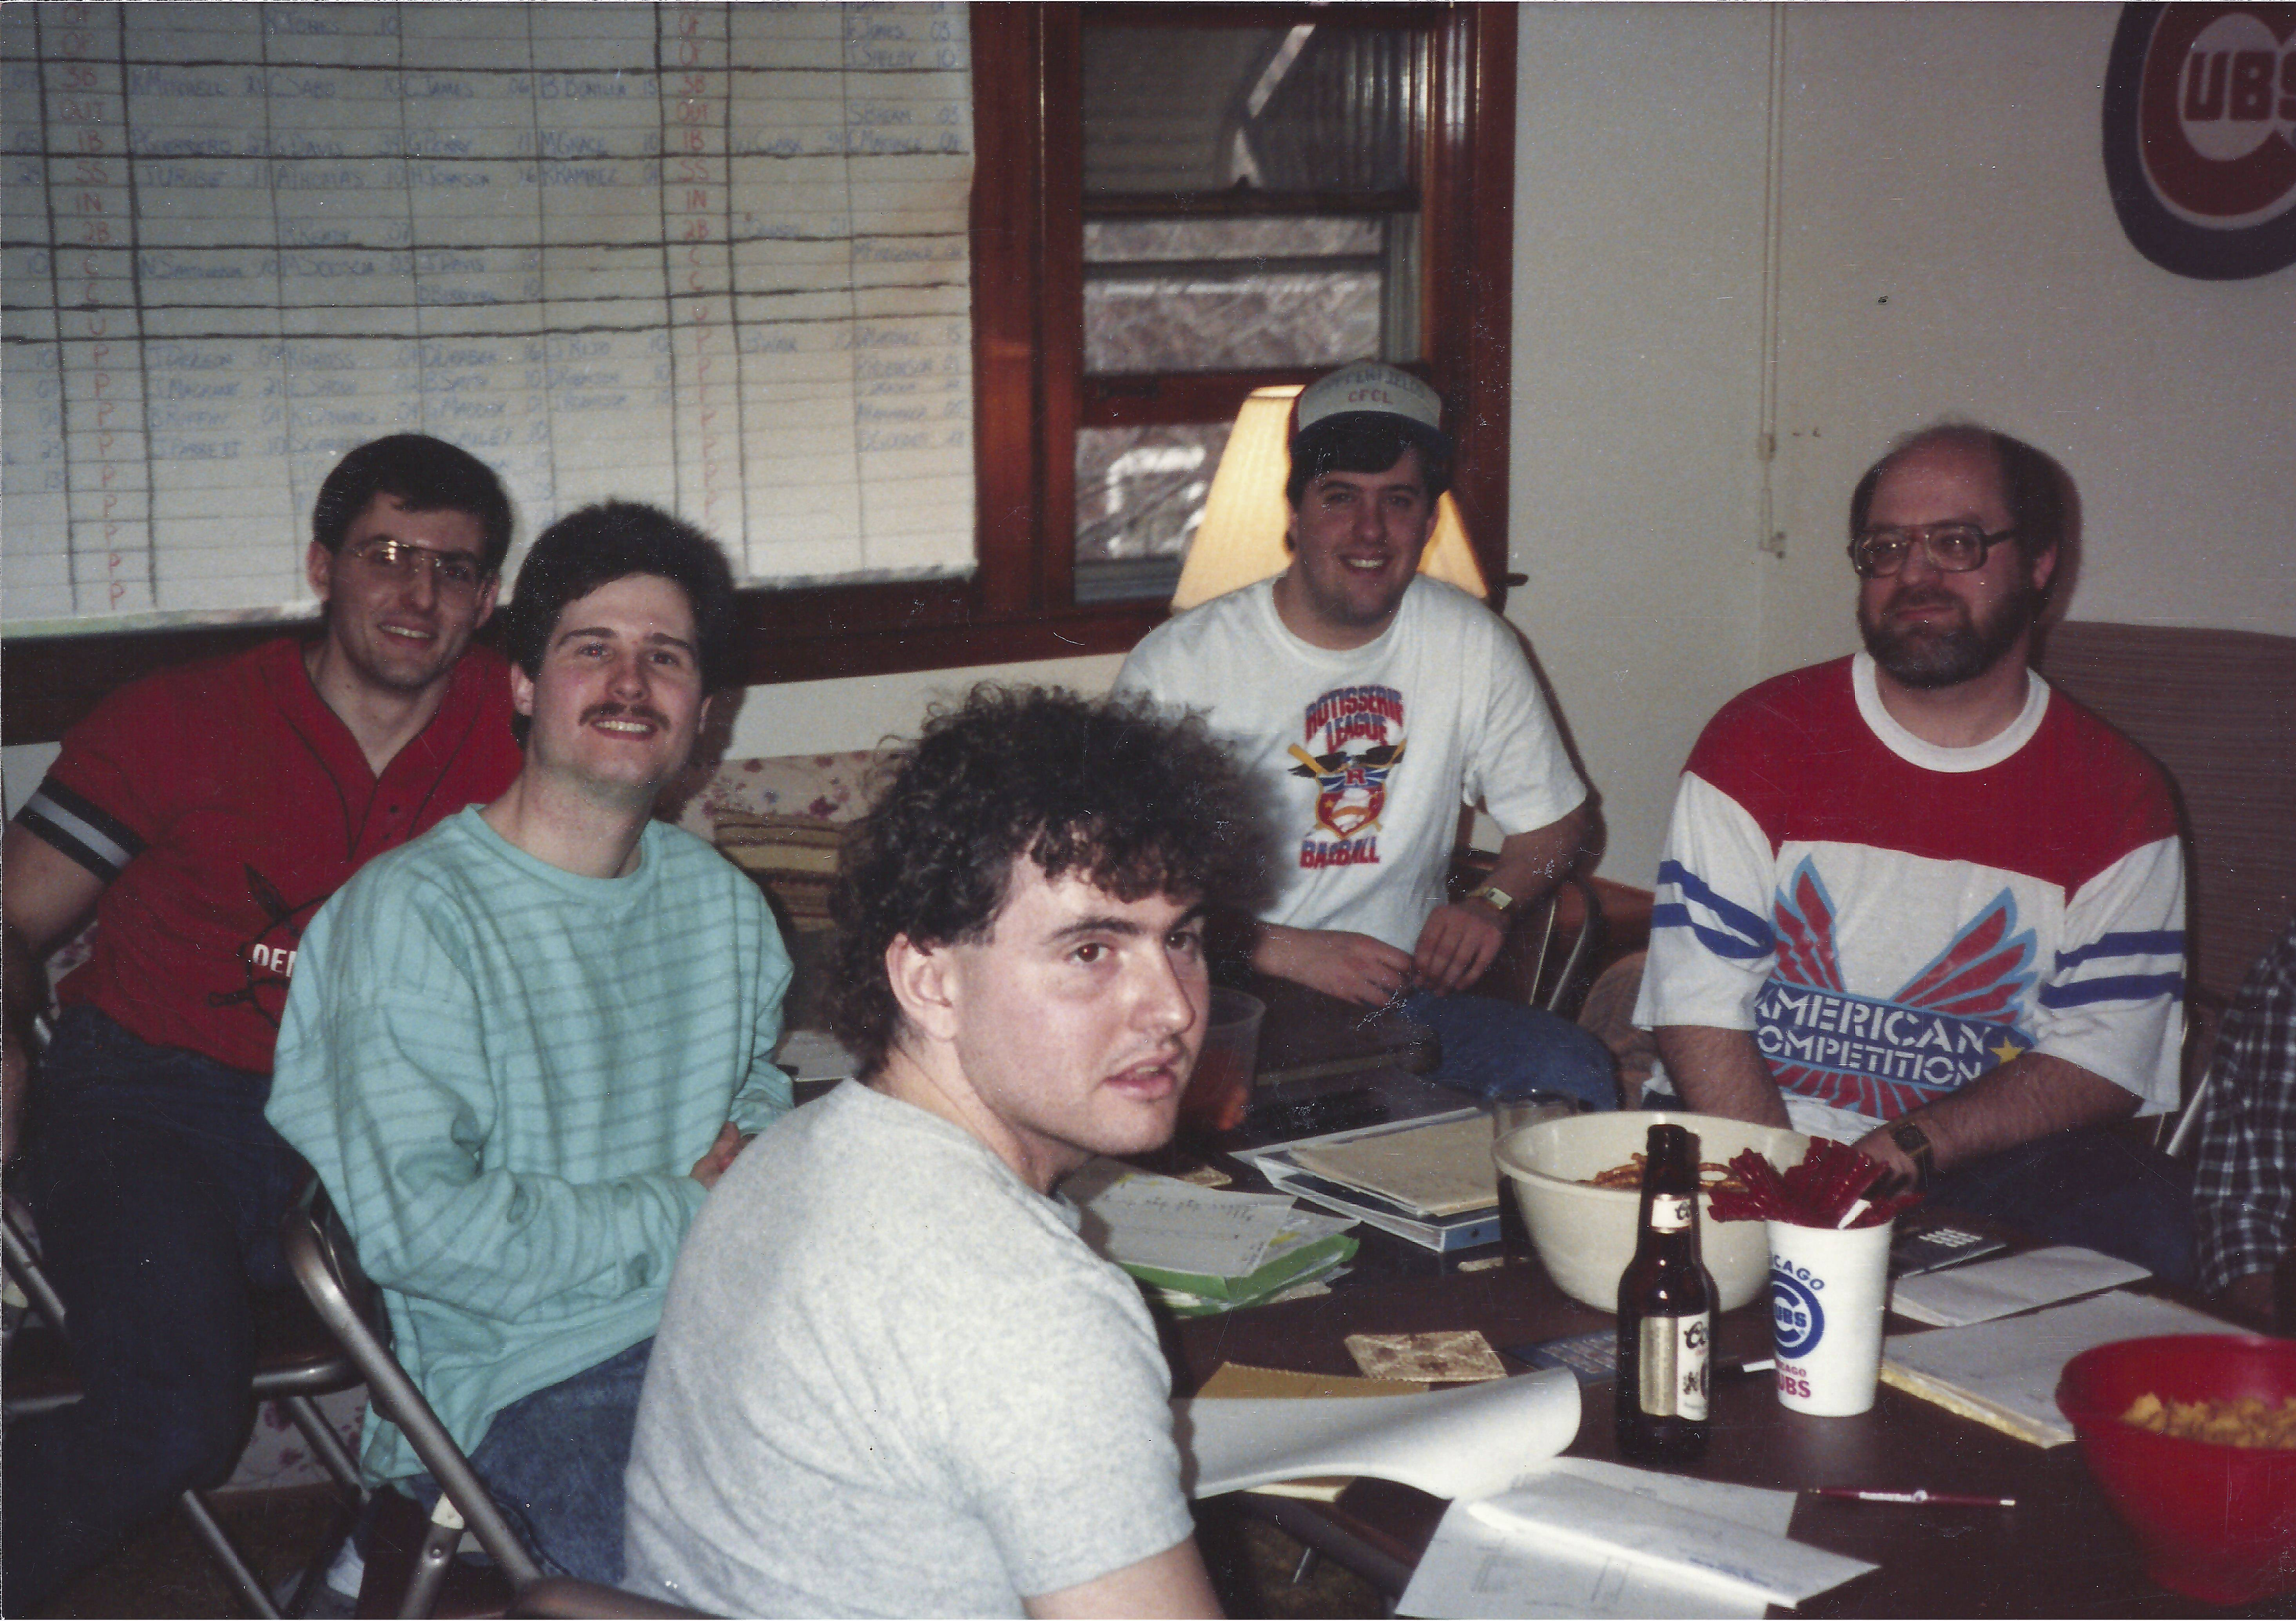 Part social event and part serious baseball business, the annual draft day gathering is like Christmas, the owners say. Owners at this draft in 1989 take a full day to make their picks.